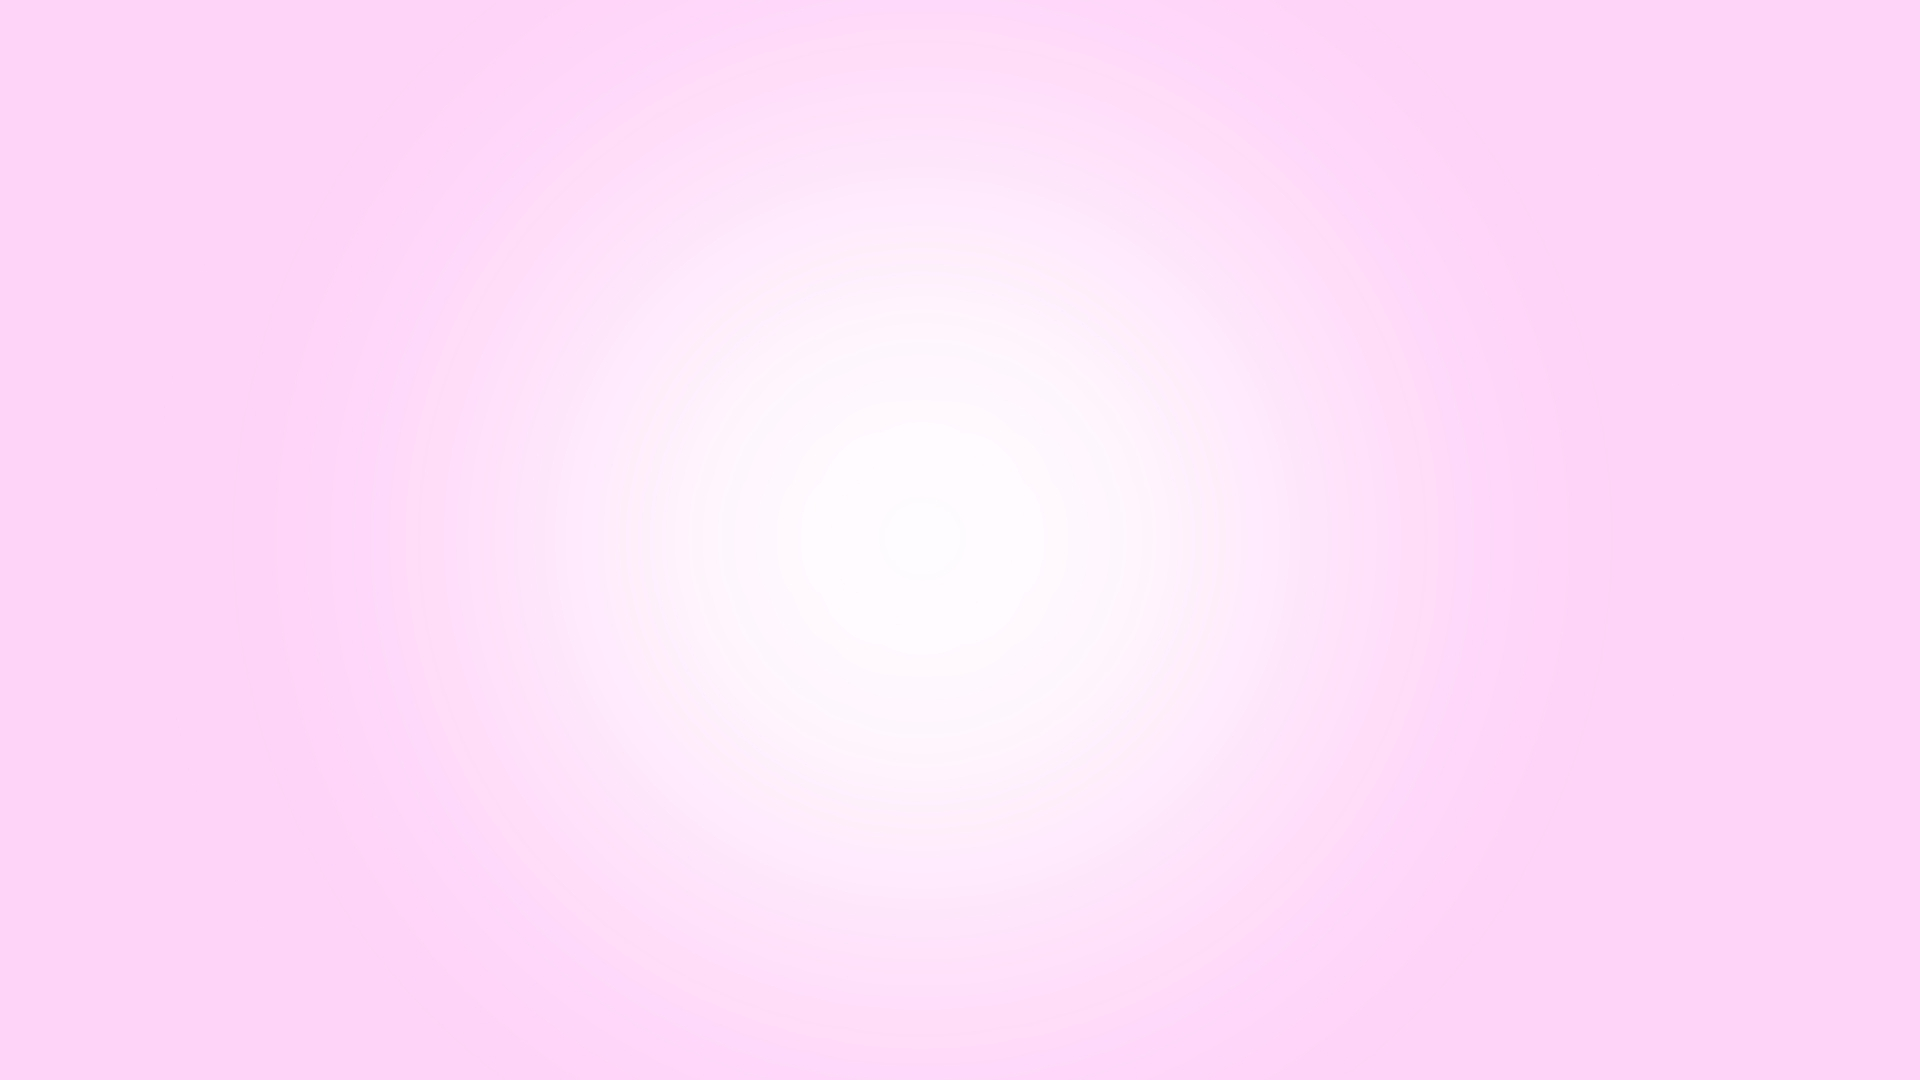 backgrounds gradients video production twitter circle pink 1920x1080